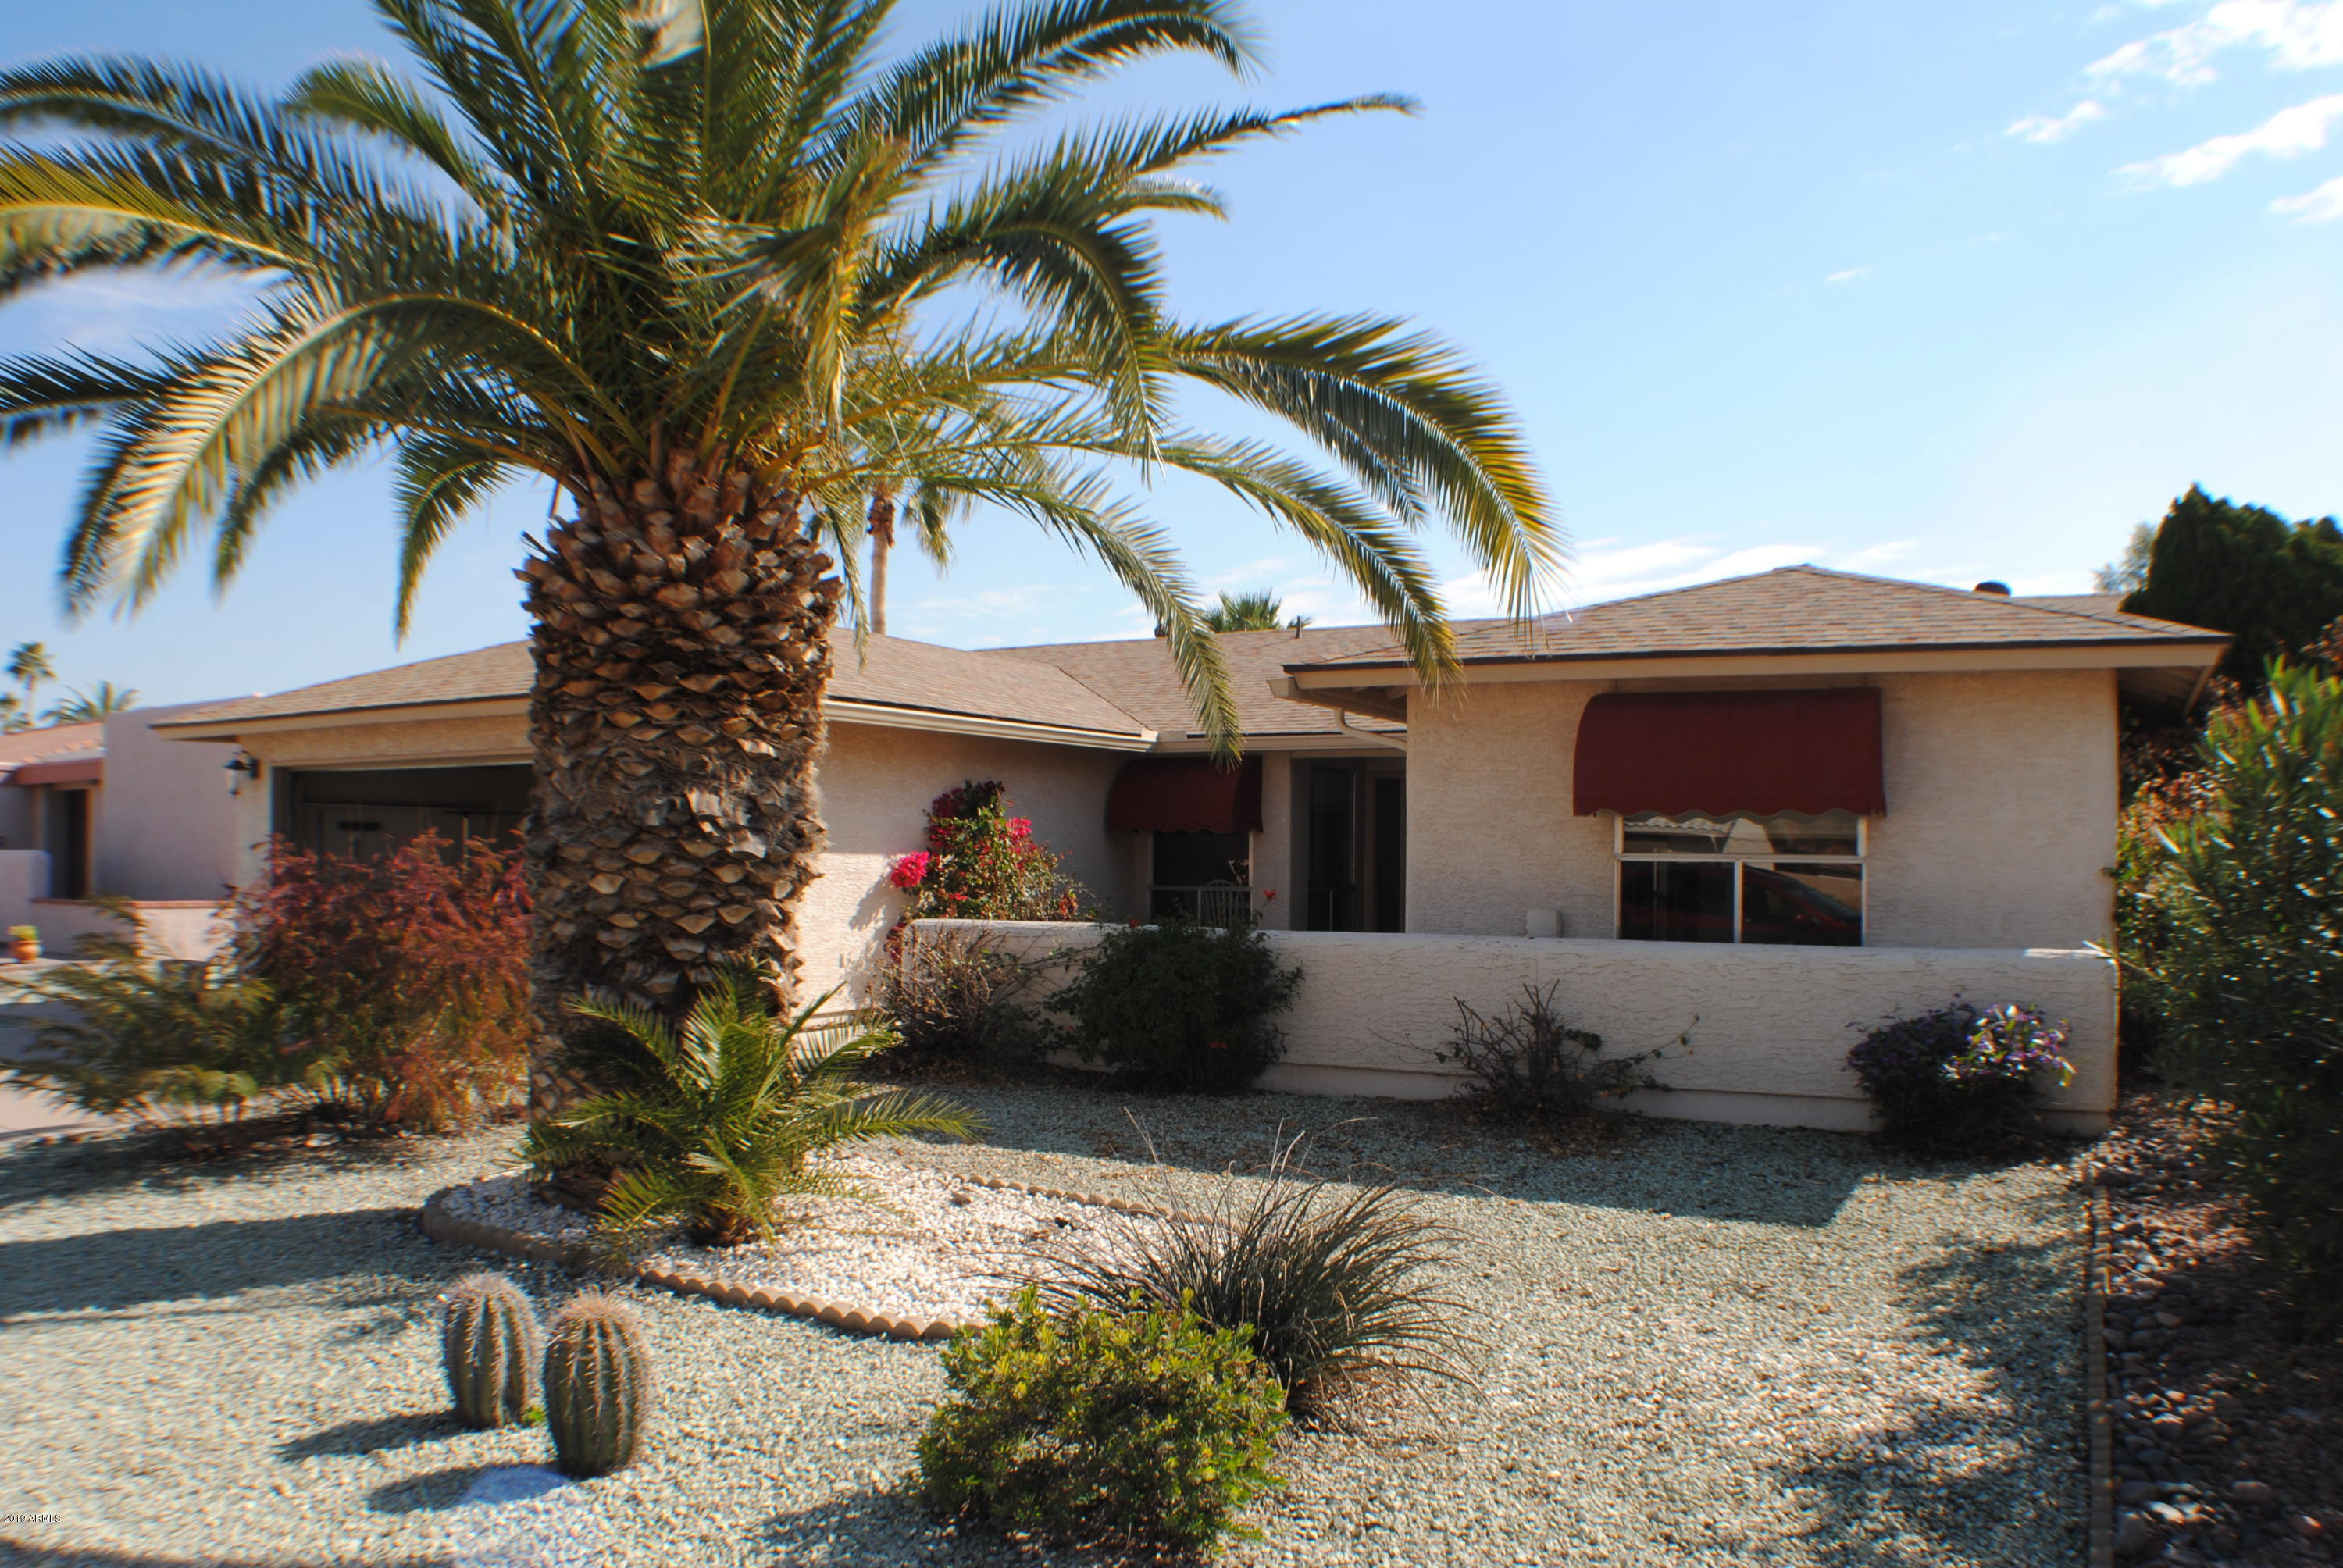 Photo for 25849 S Brentwood Drive, Sun Lakes, AZ 85248 (MLS # 6033480)